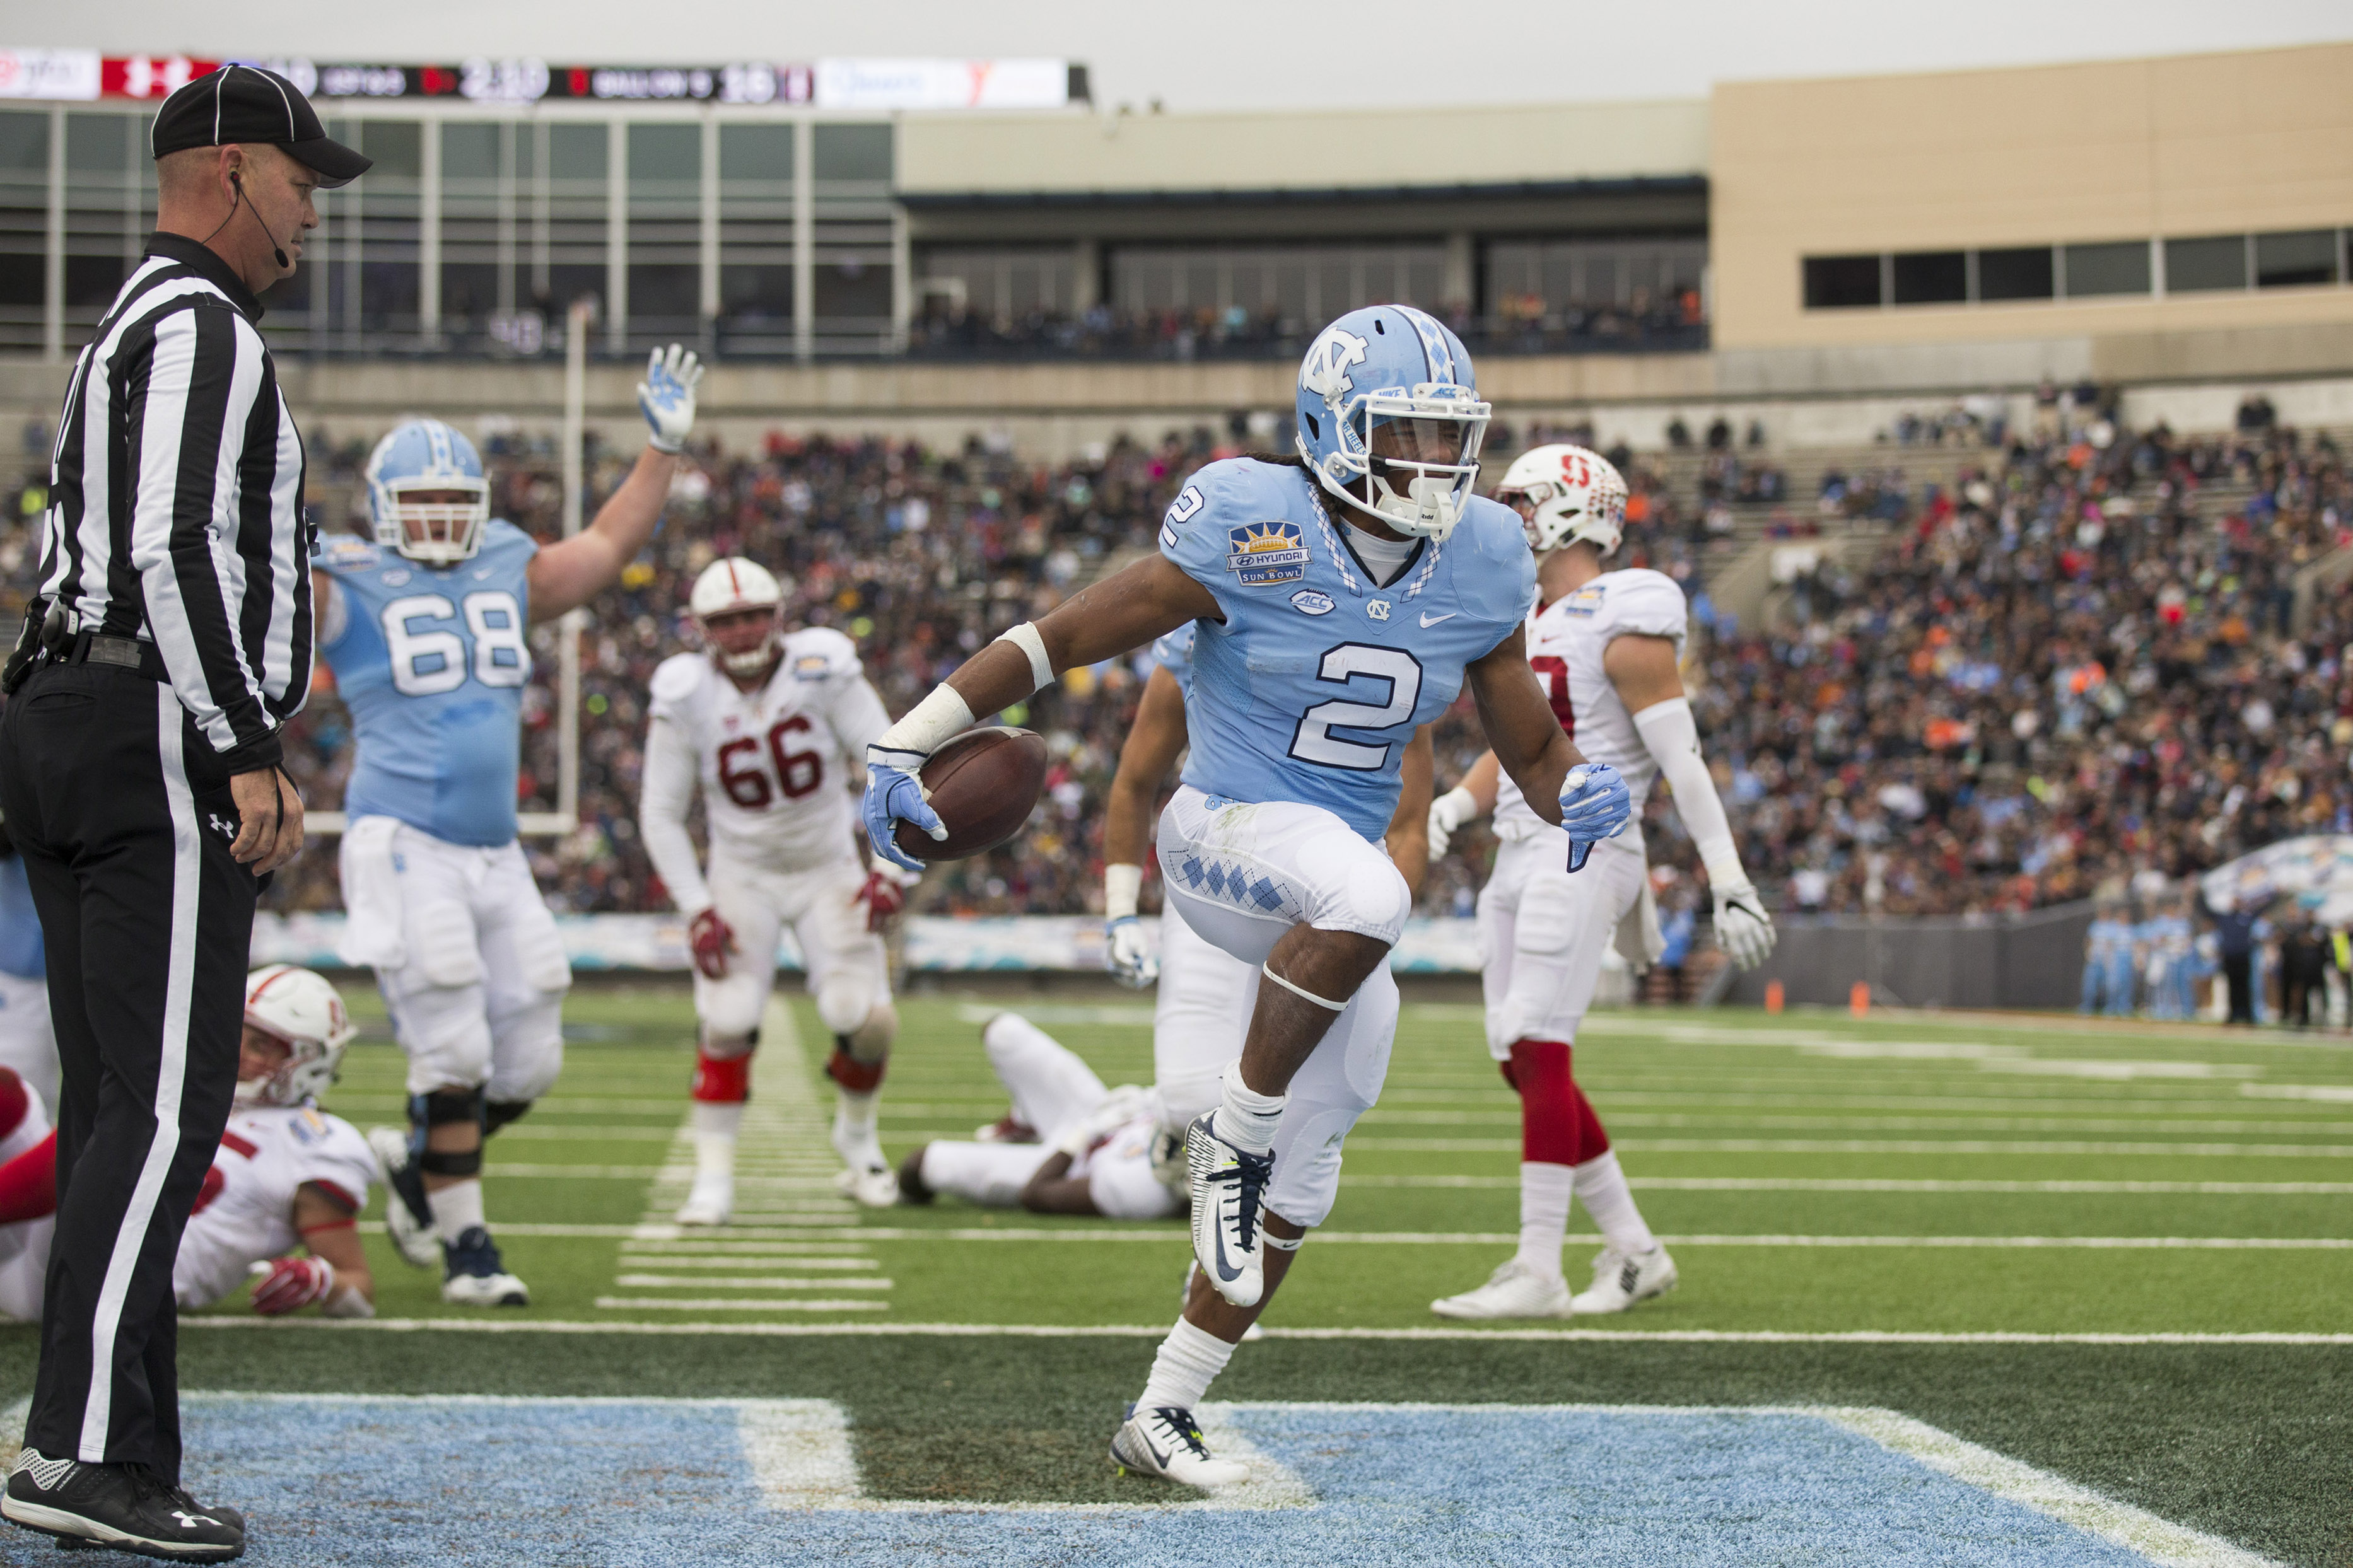 Top UNC Football players for 2017: No. 16 Michael Carter